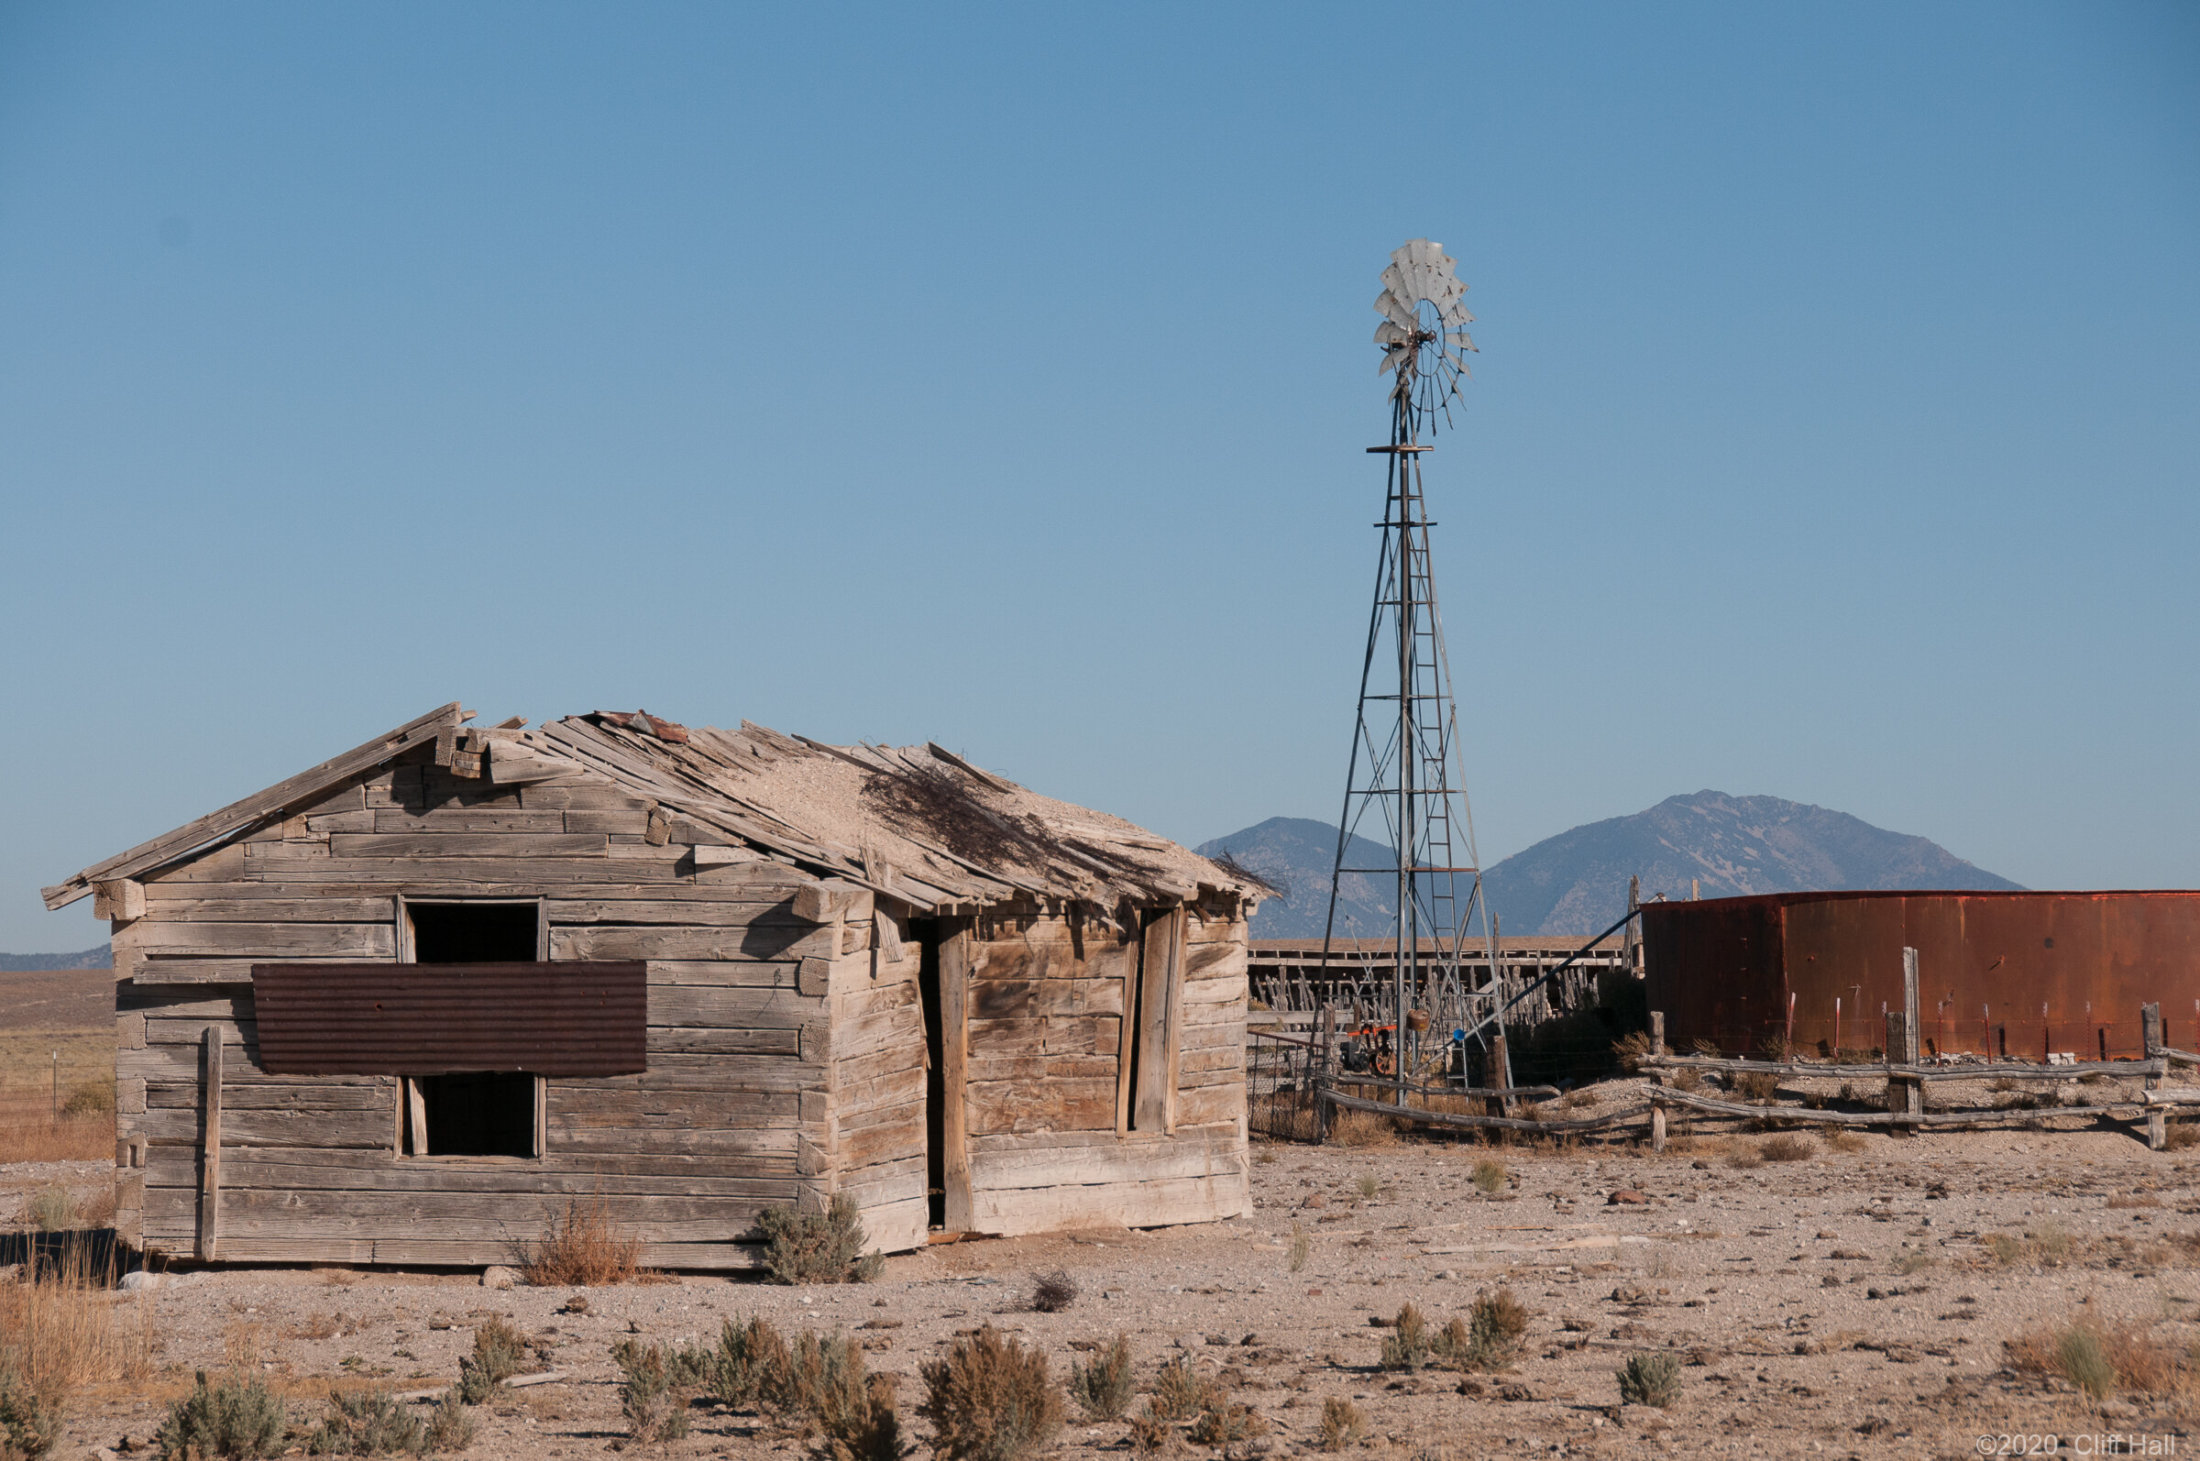 Abandoned buildings, but windmill still works